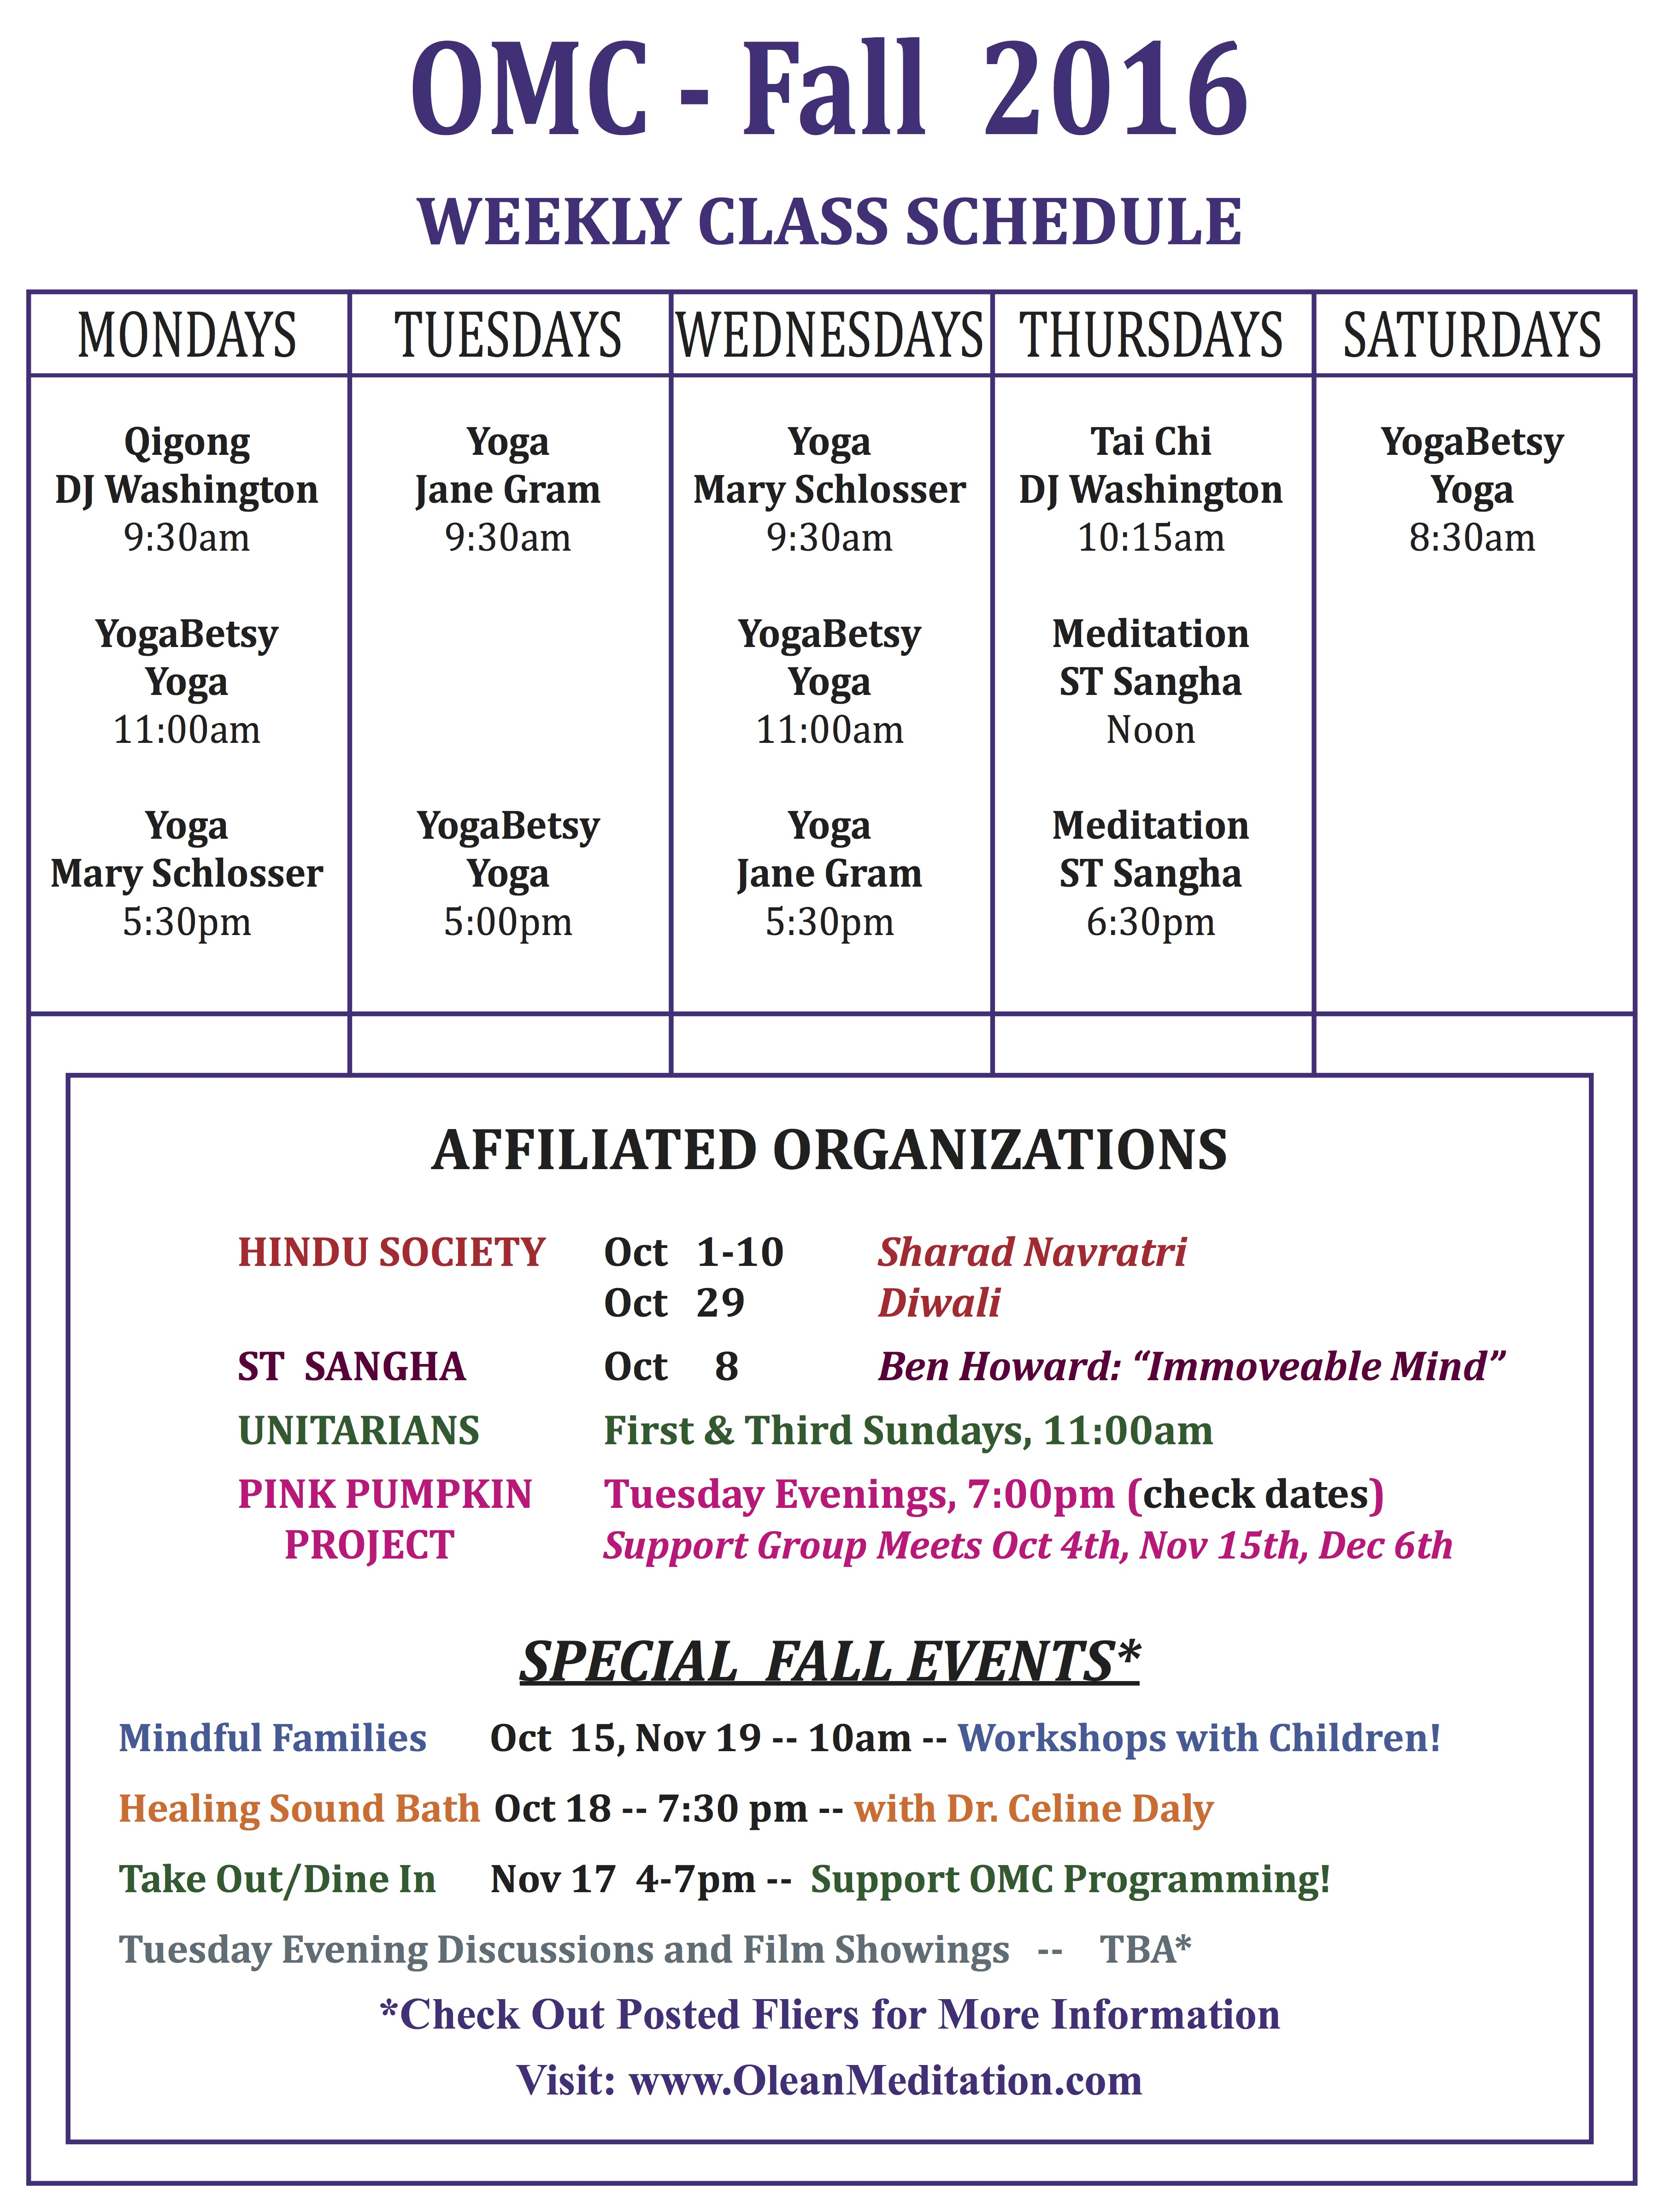 OMC's Fall 2016 Schedule